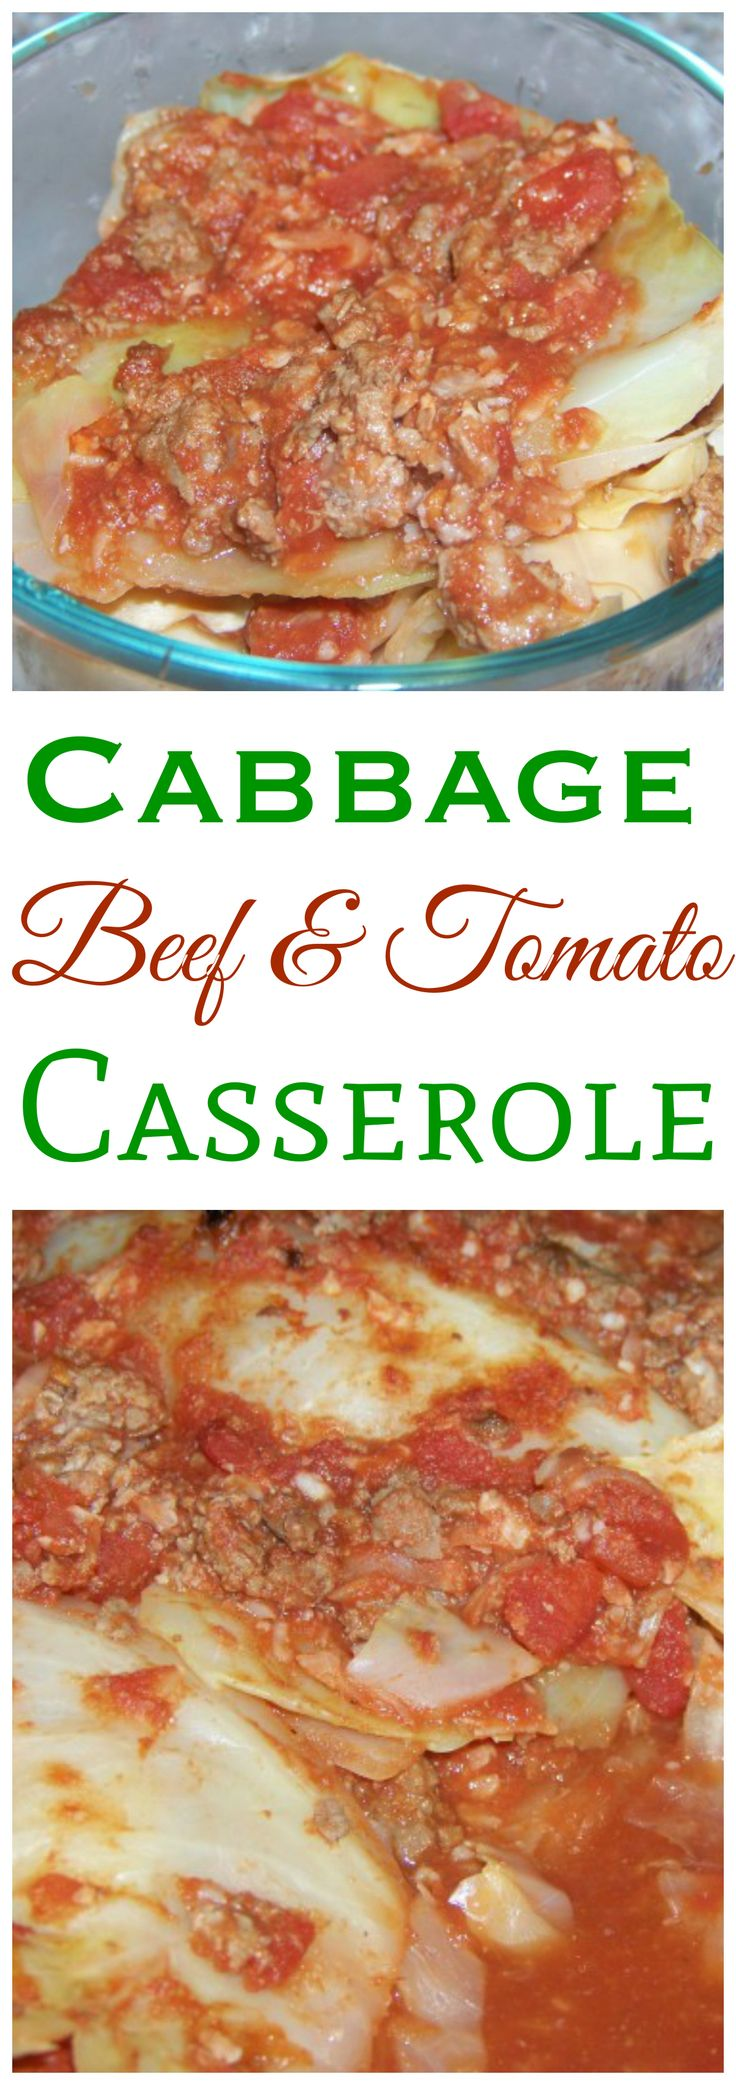 A simple low carb cabbage beef tomato casserole. This recipe bakes up in the oven so it can be prepared ahead and heated up just before serving.